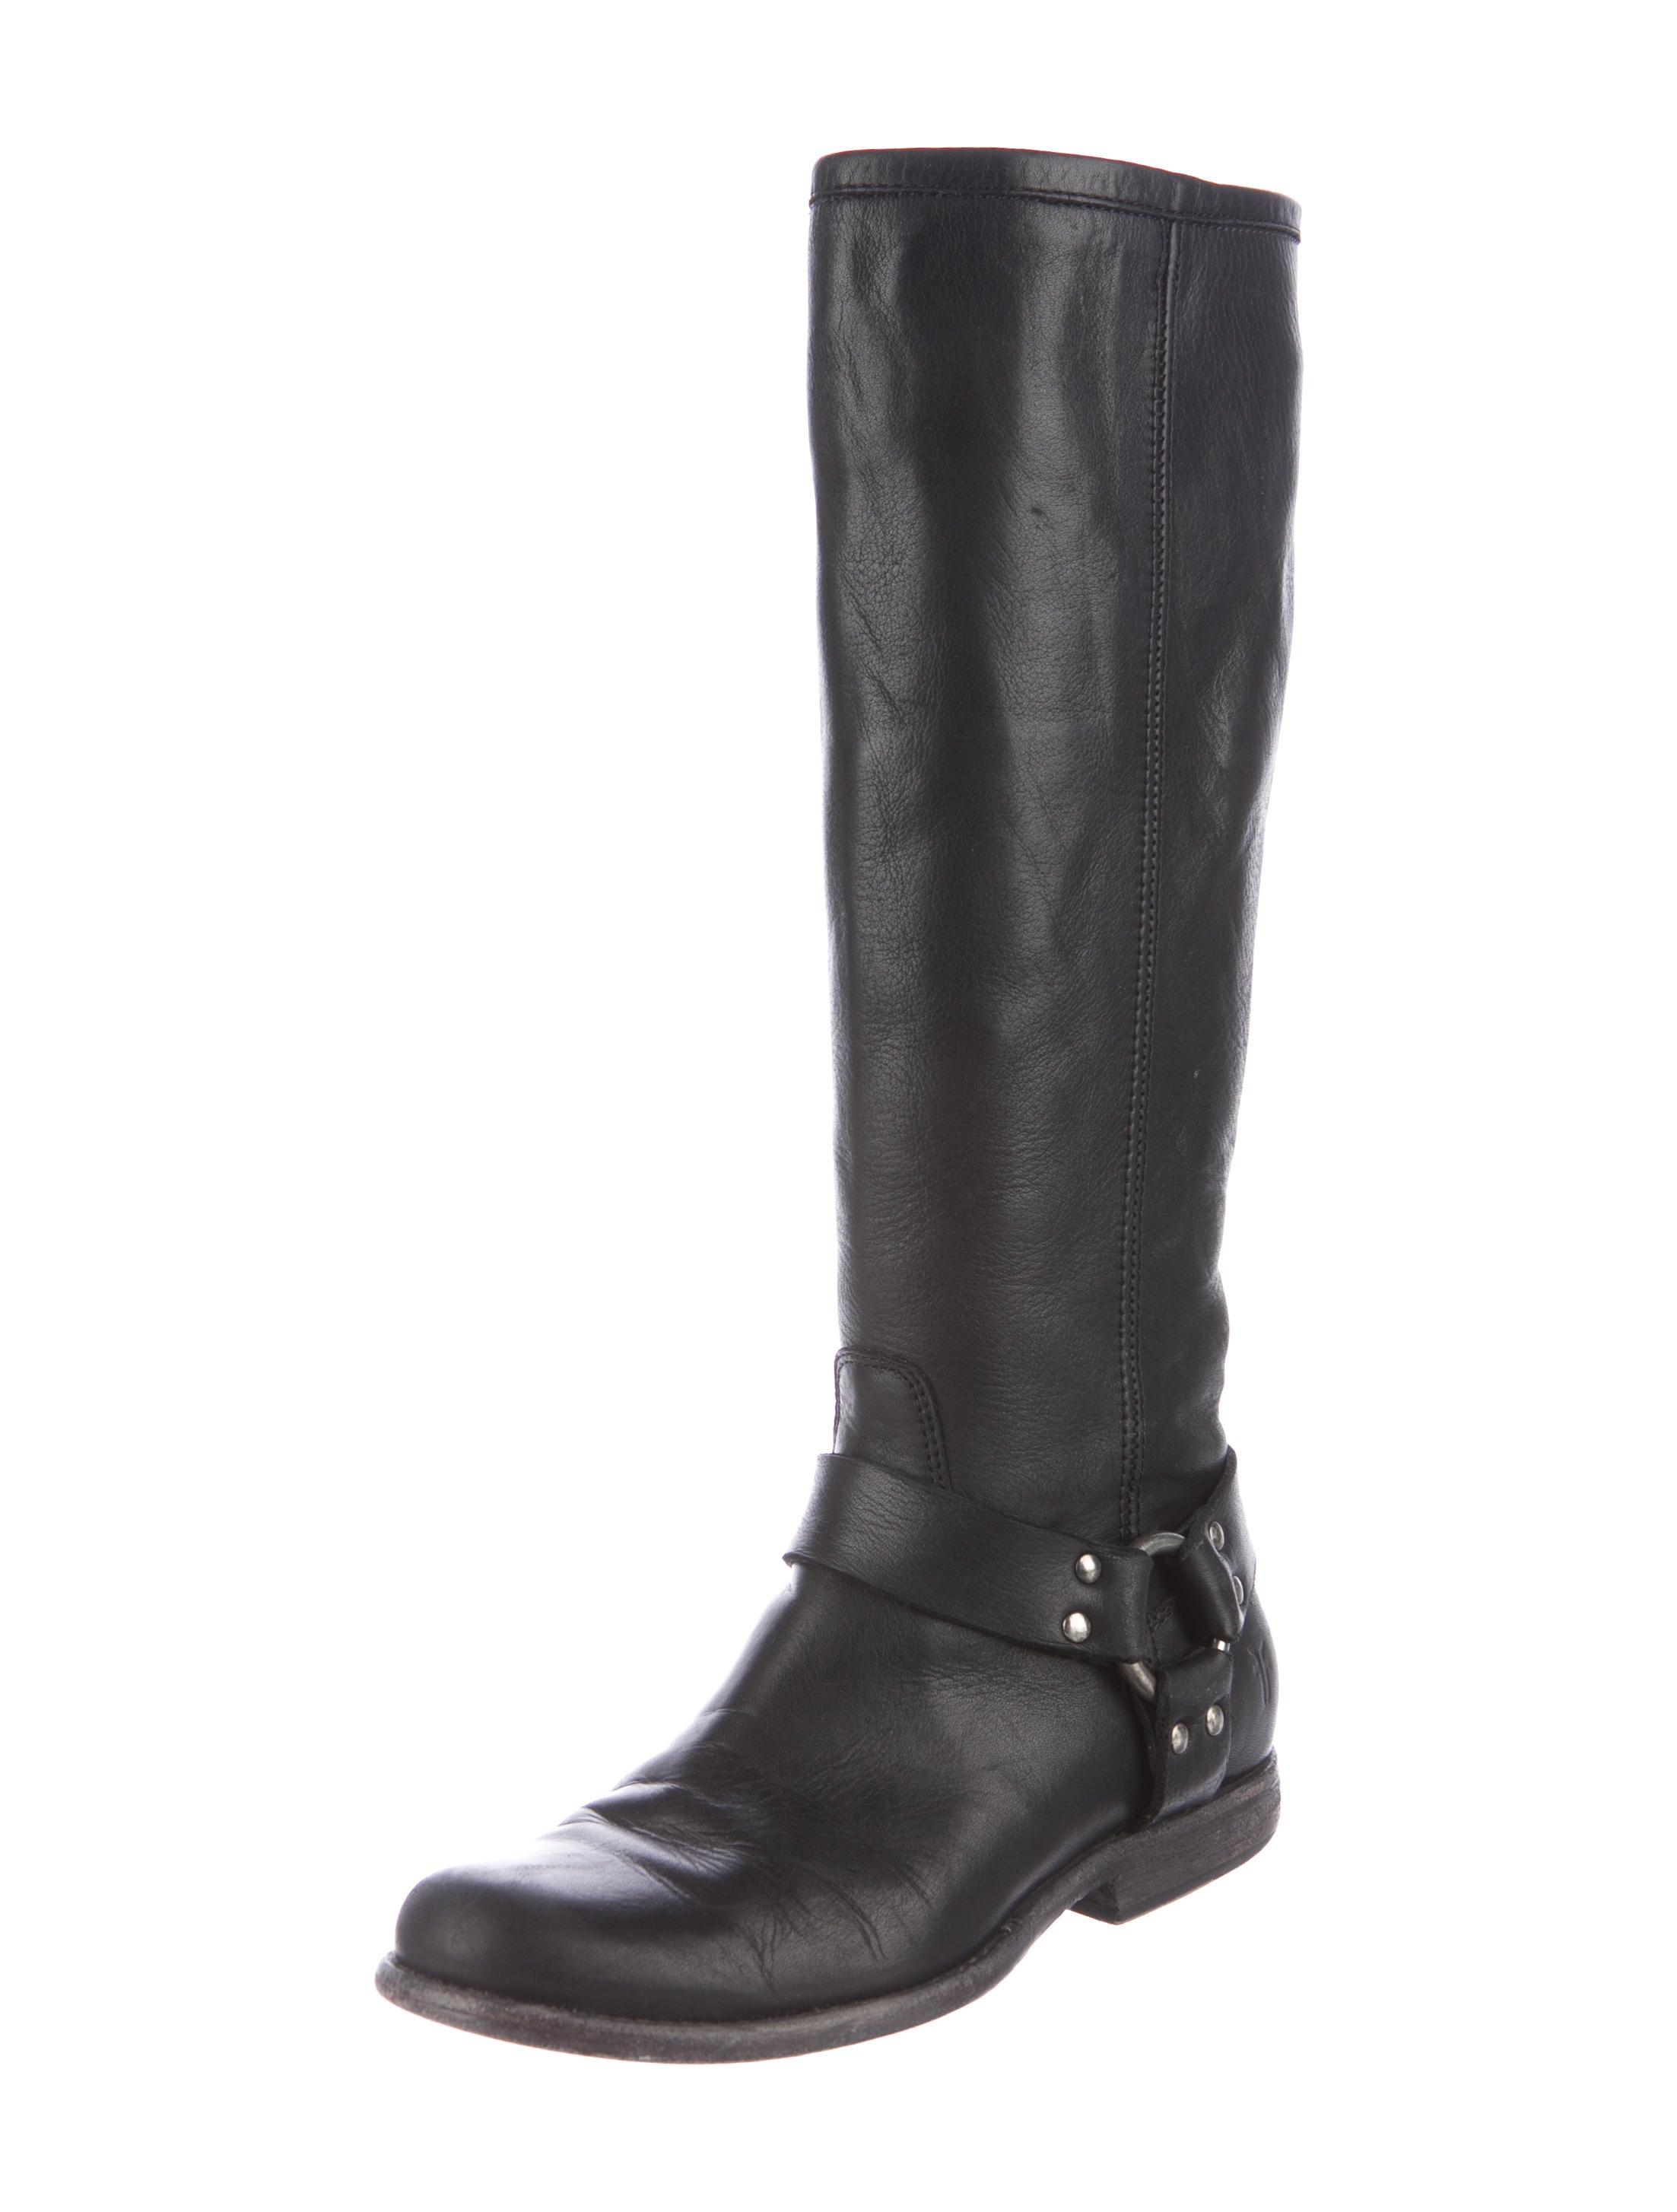 frye leather knee high boots shoes wf821382 the realreal